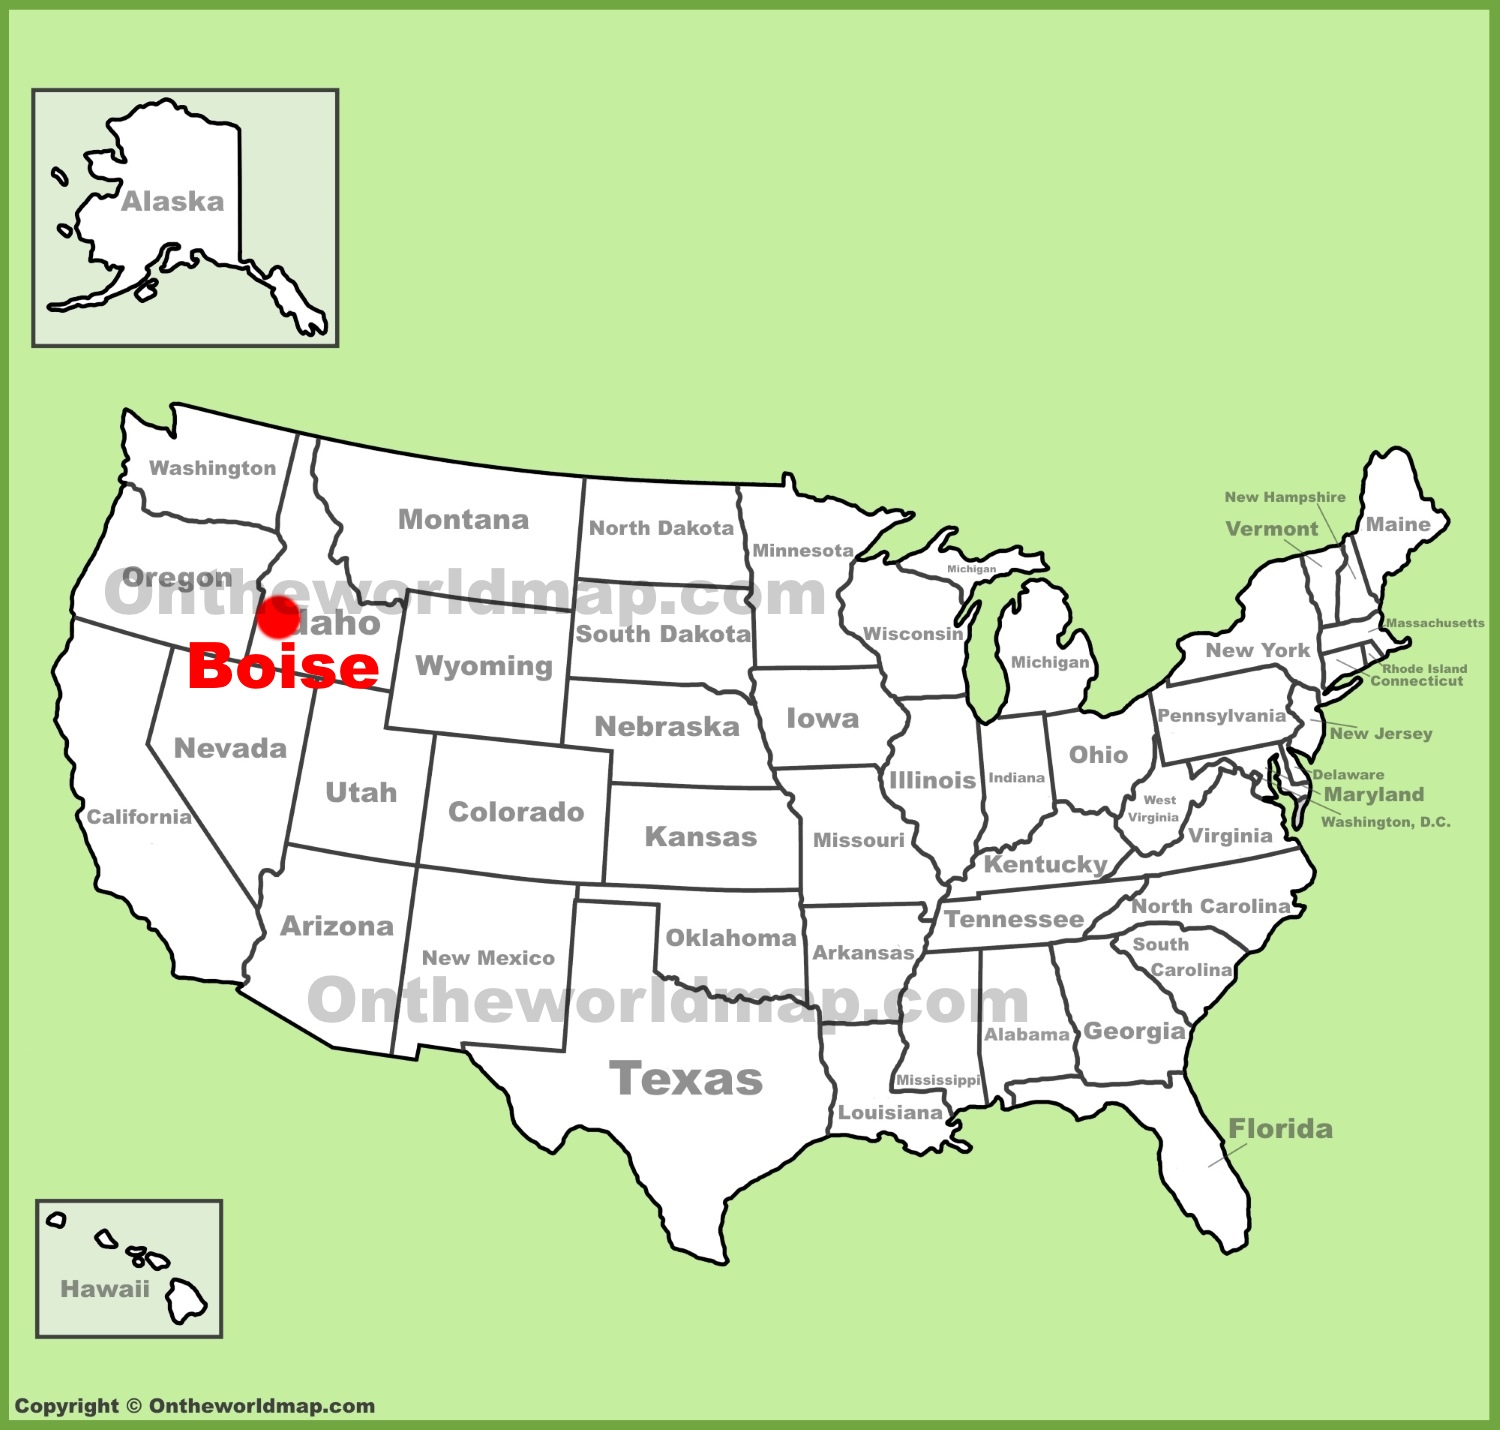 Boise location on the US Map